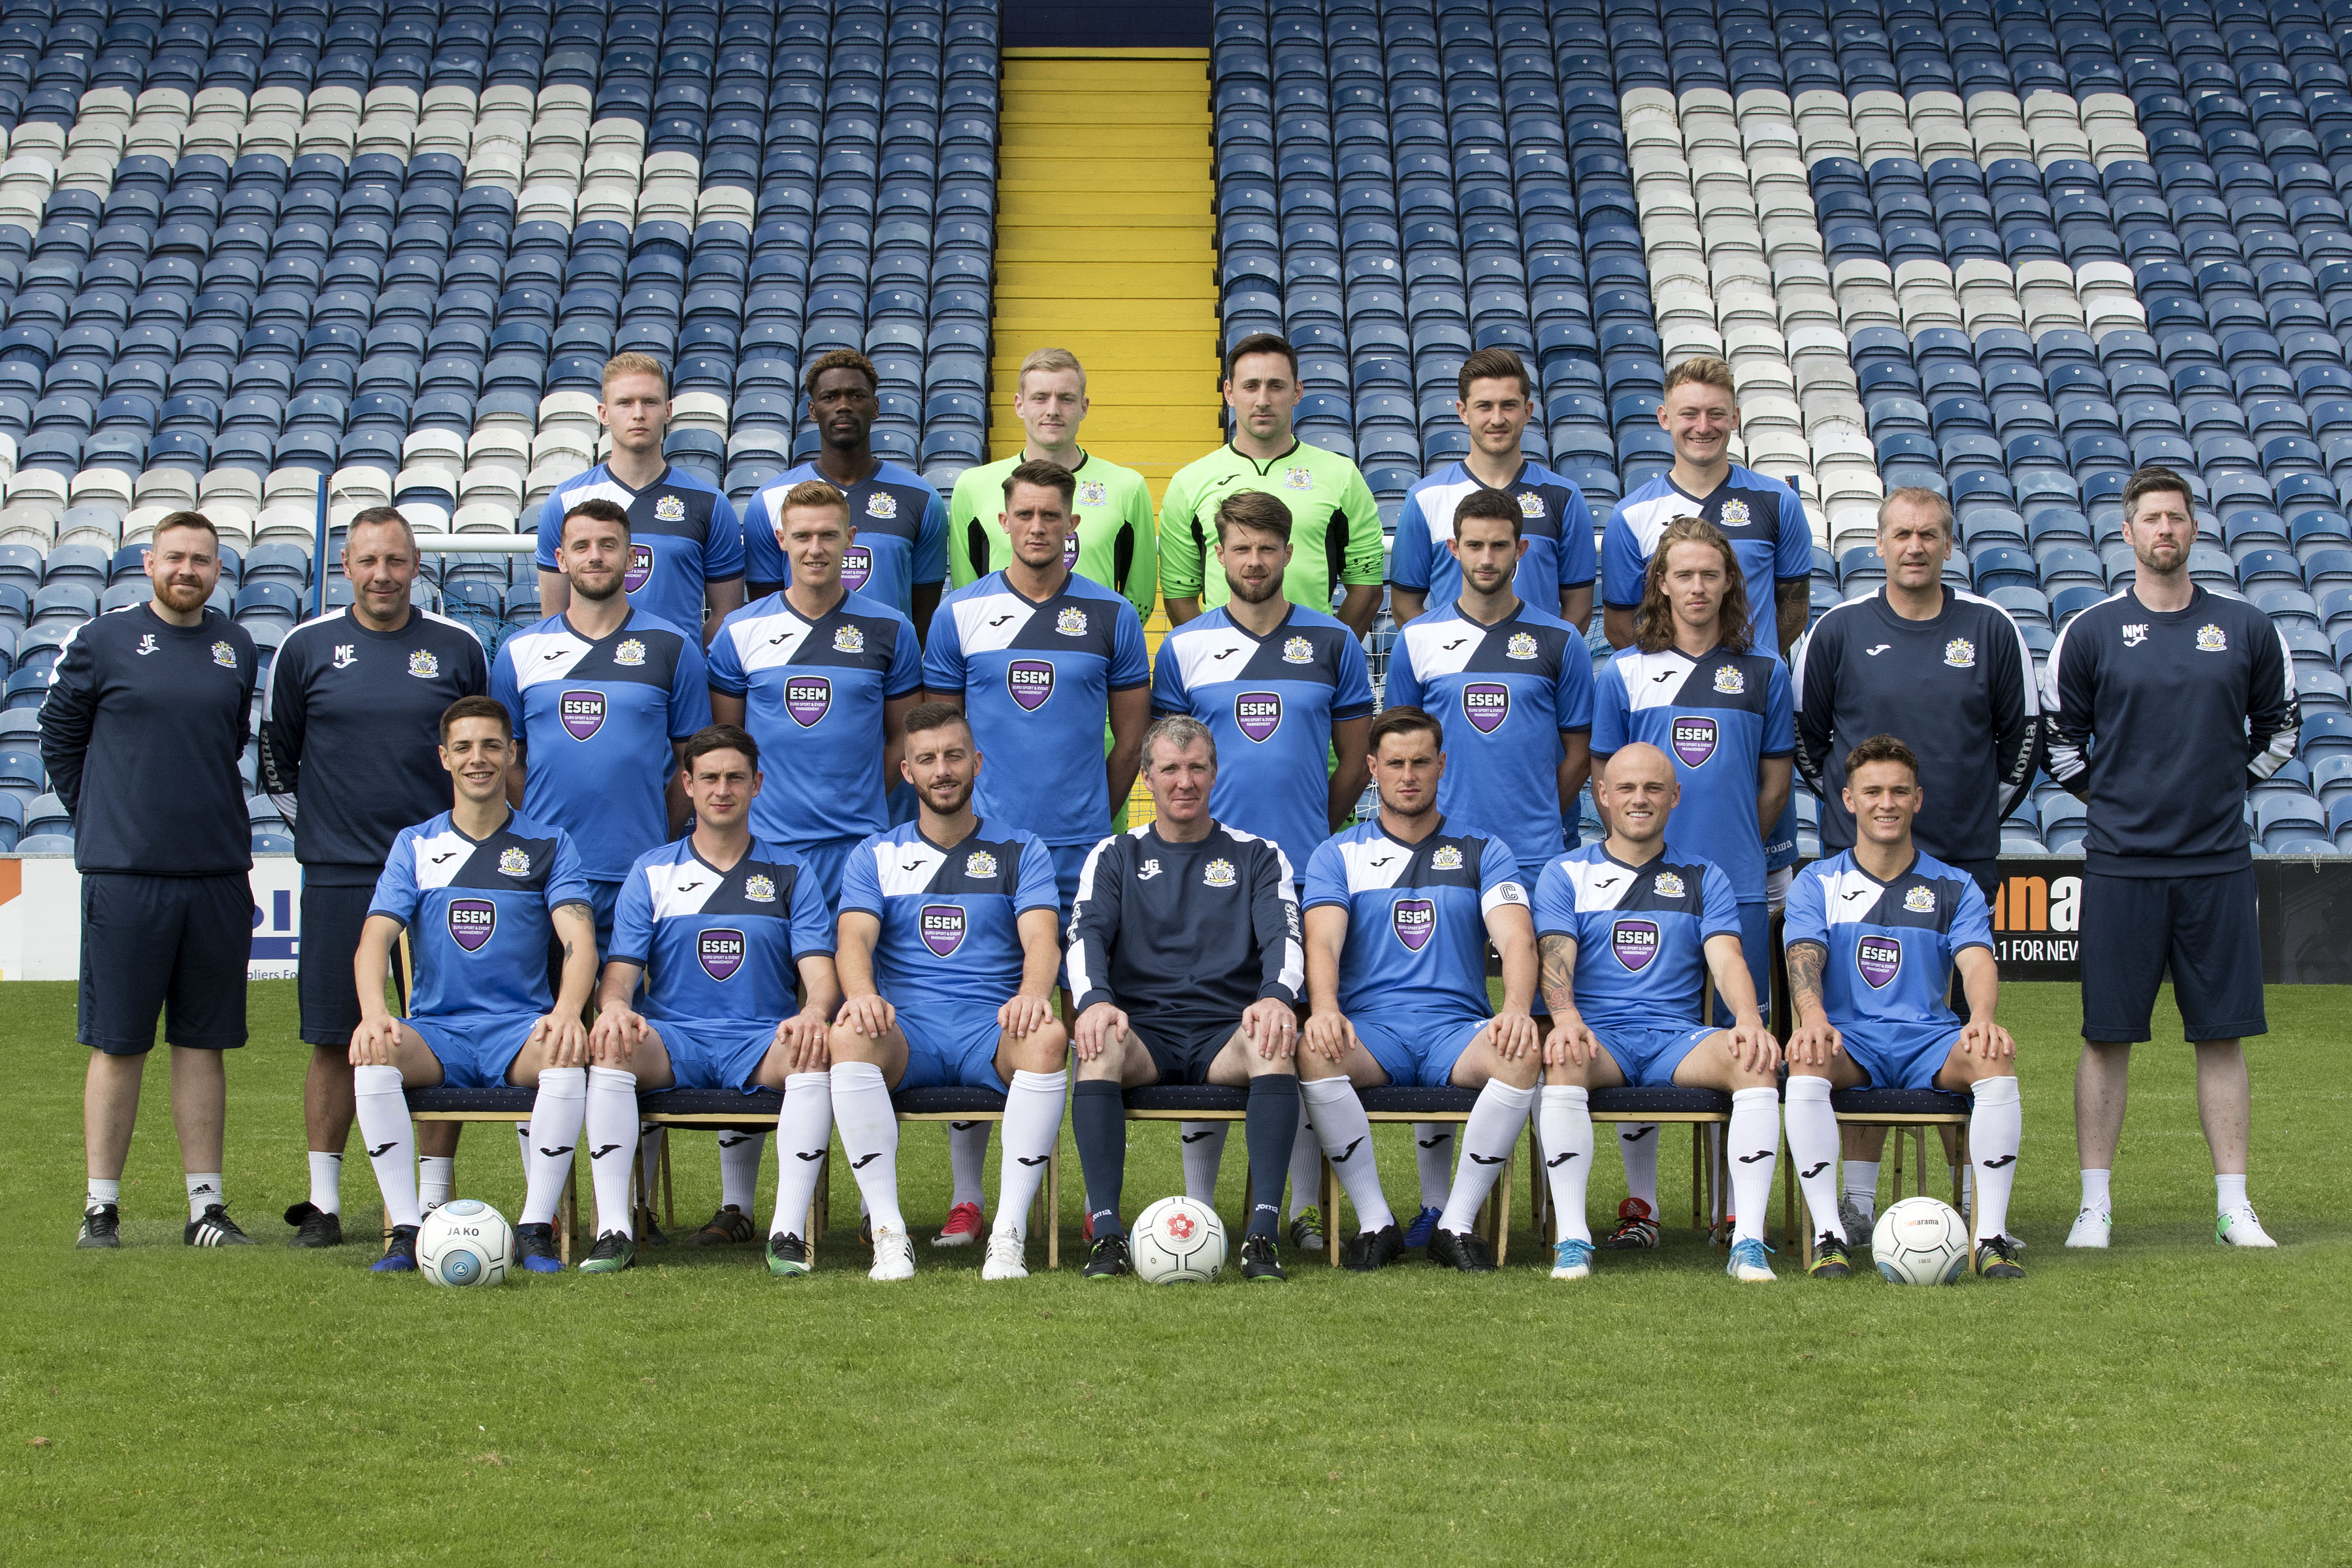 Sport Photography, Football Photography, Stockport County, Stockport, Manchester, Cheshire, Lancashire, Yorkshire